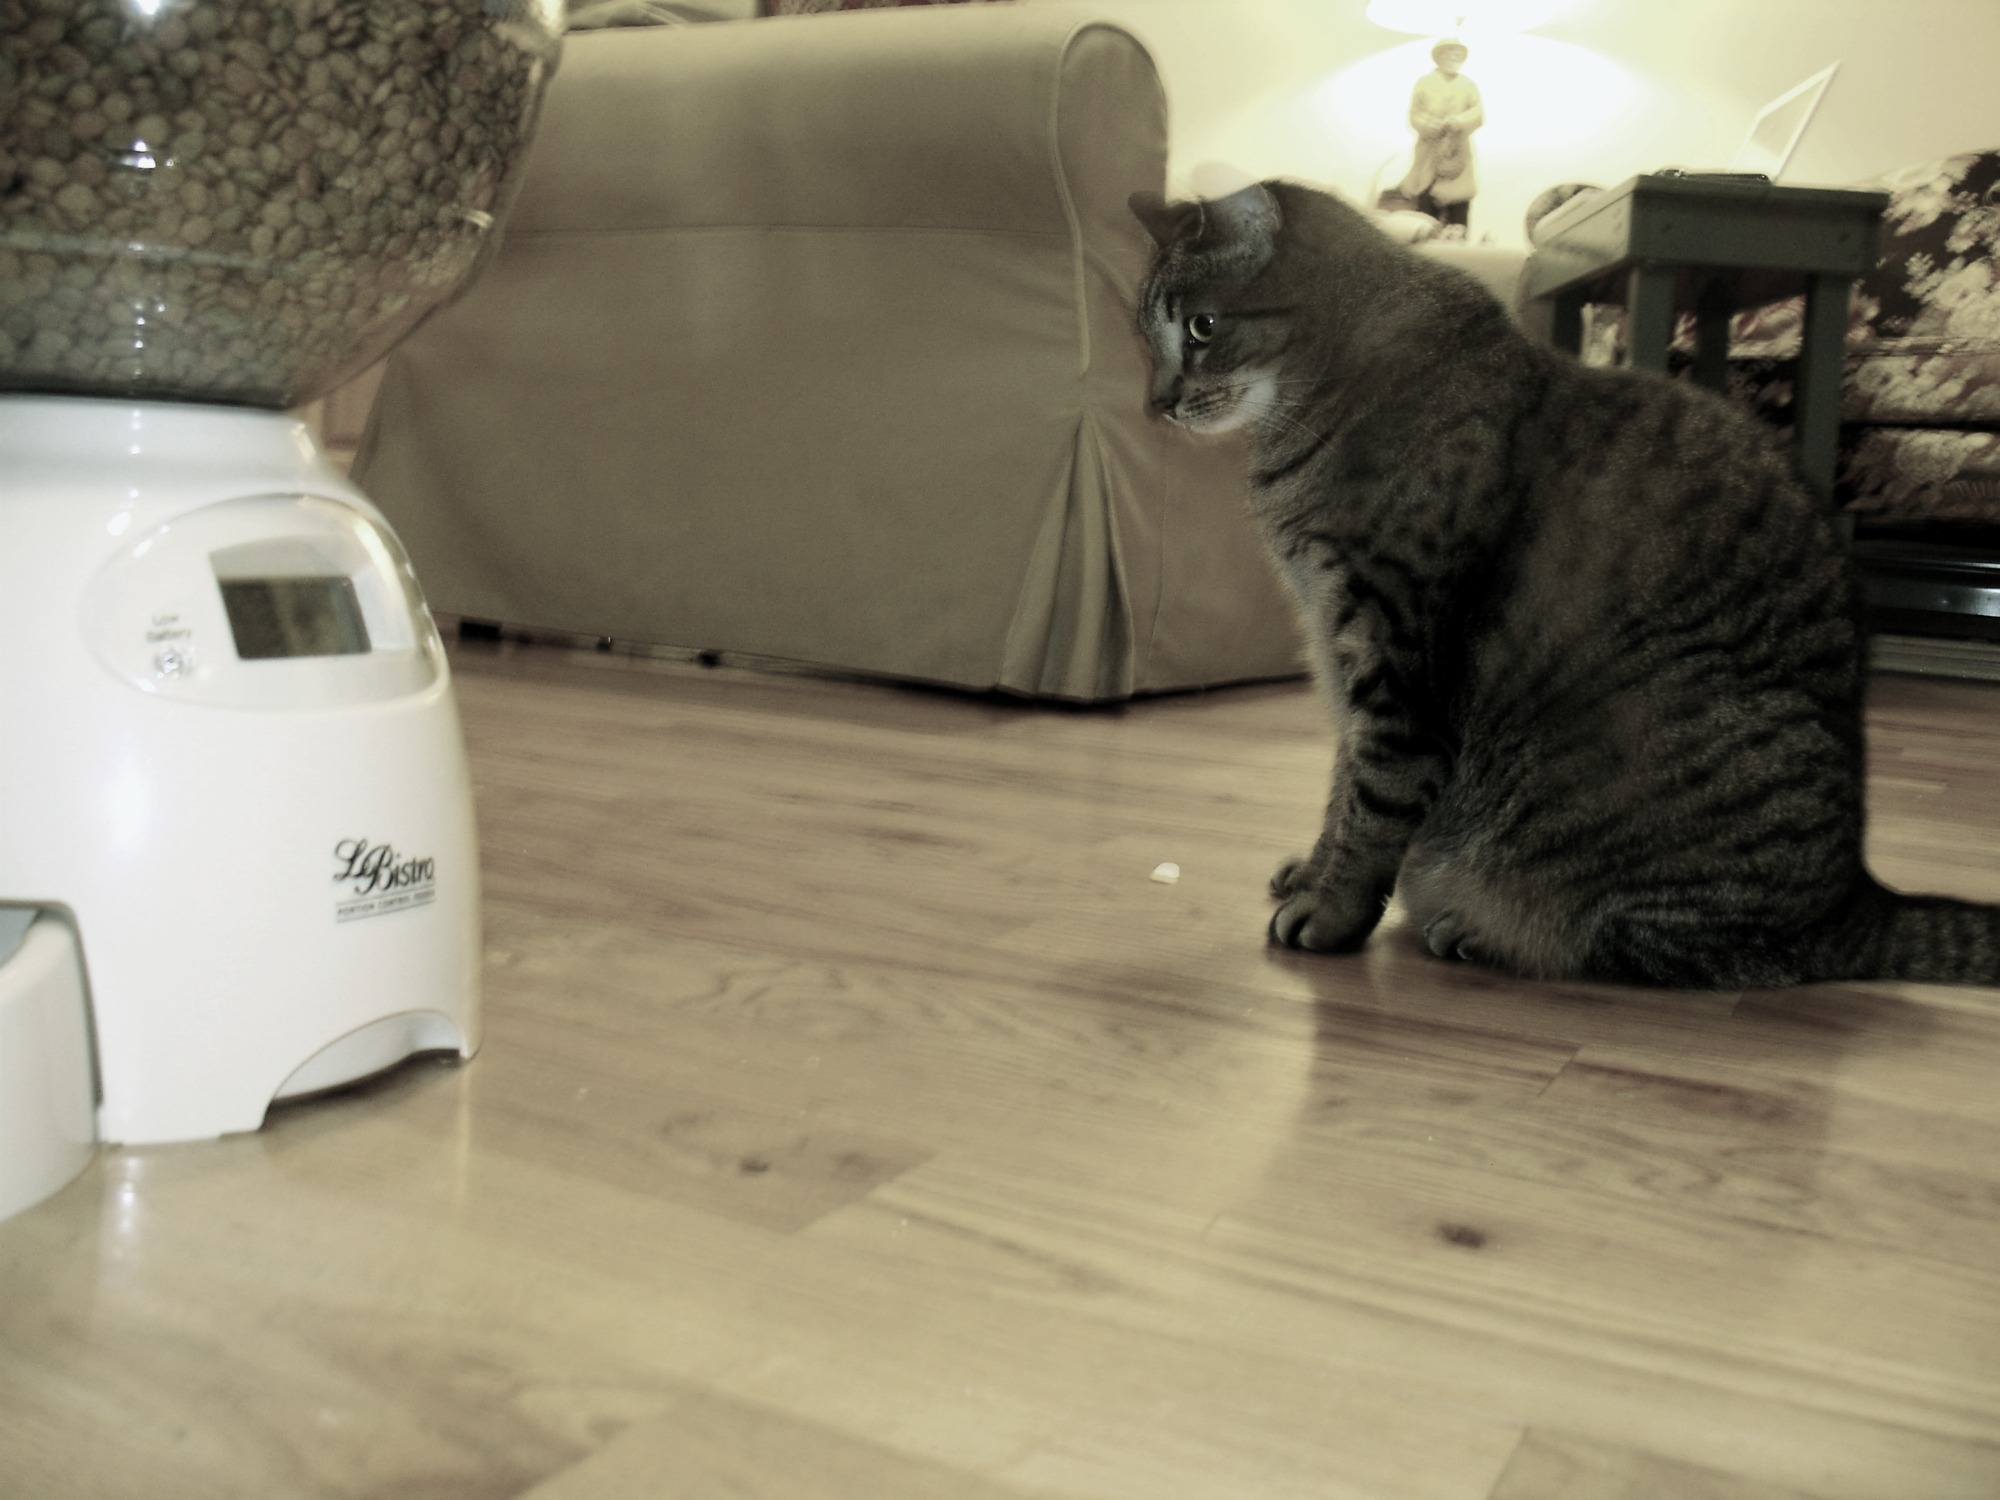 Sophie staring at cat feeder using her Jedi mind powers